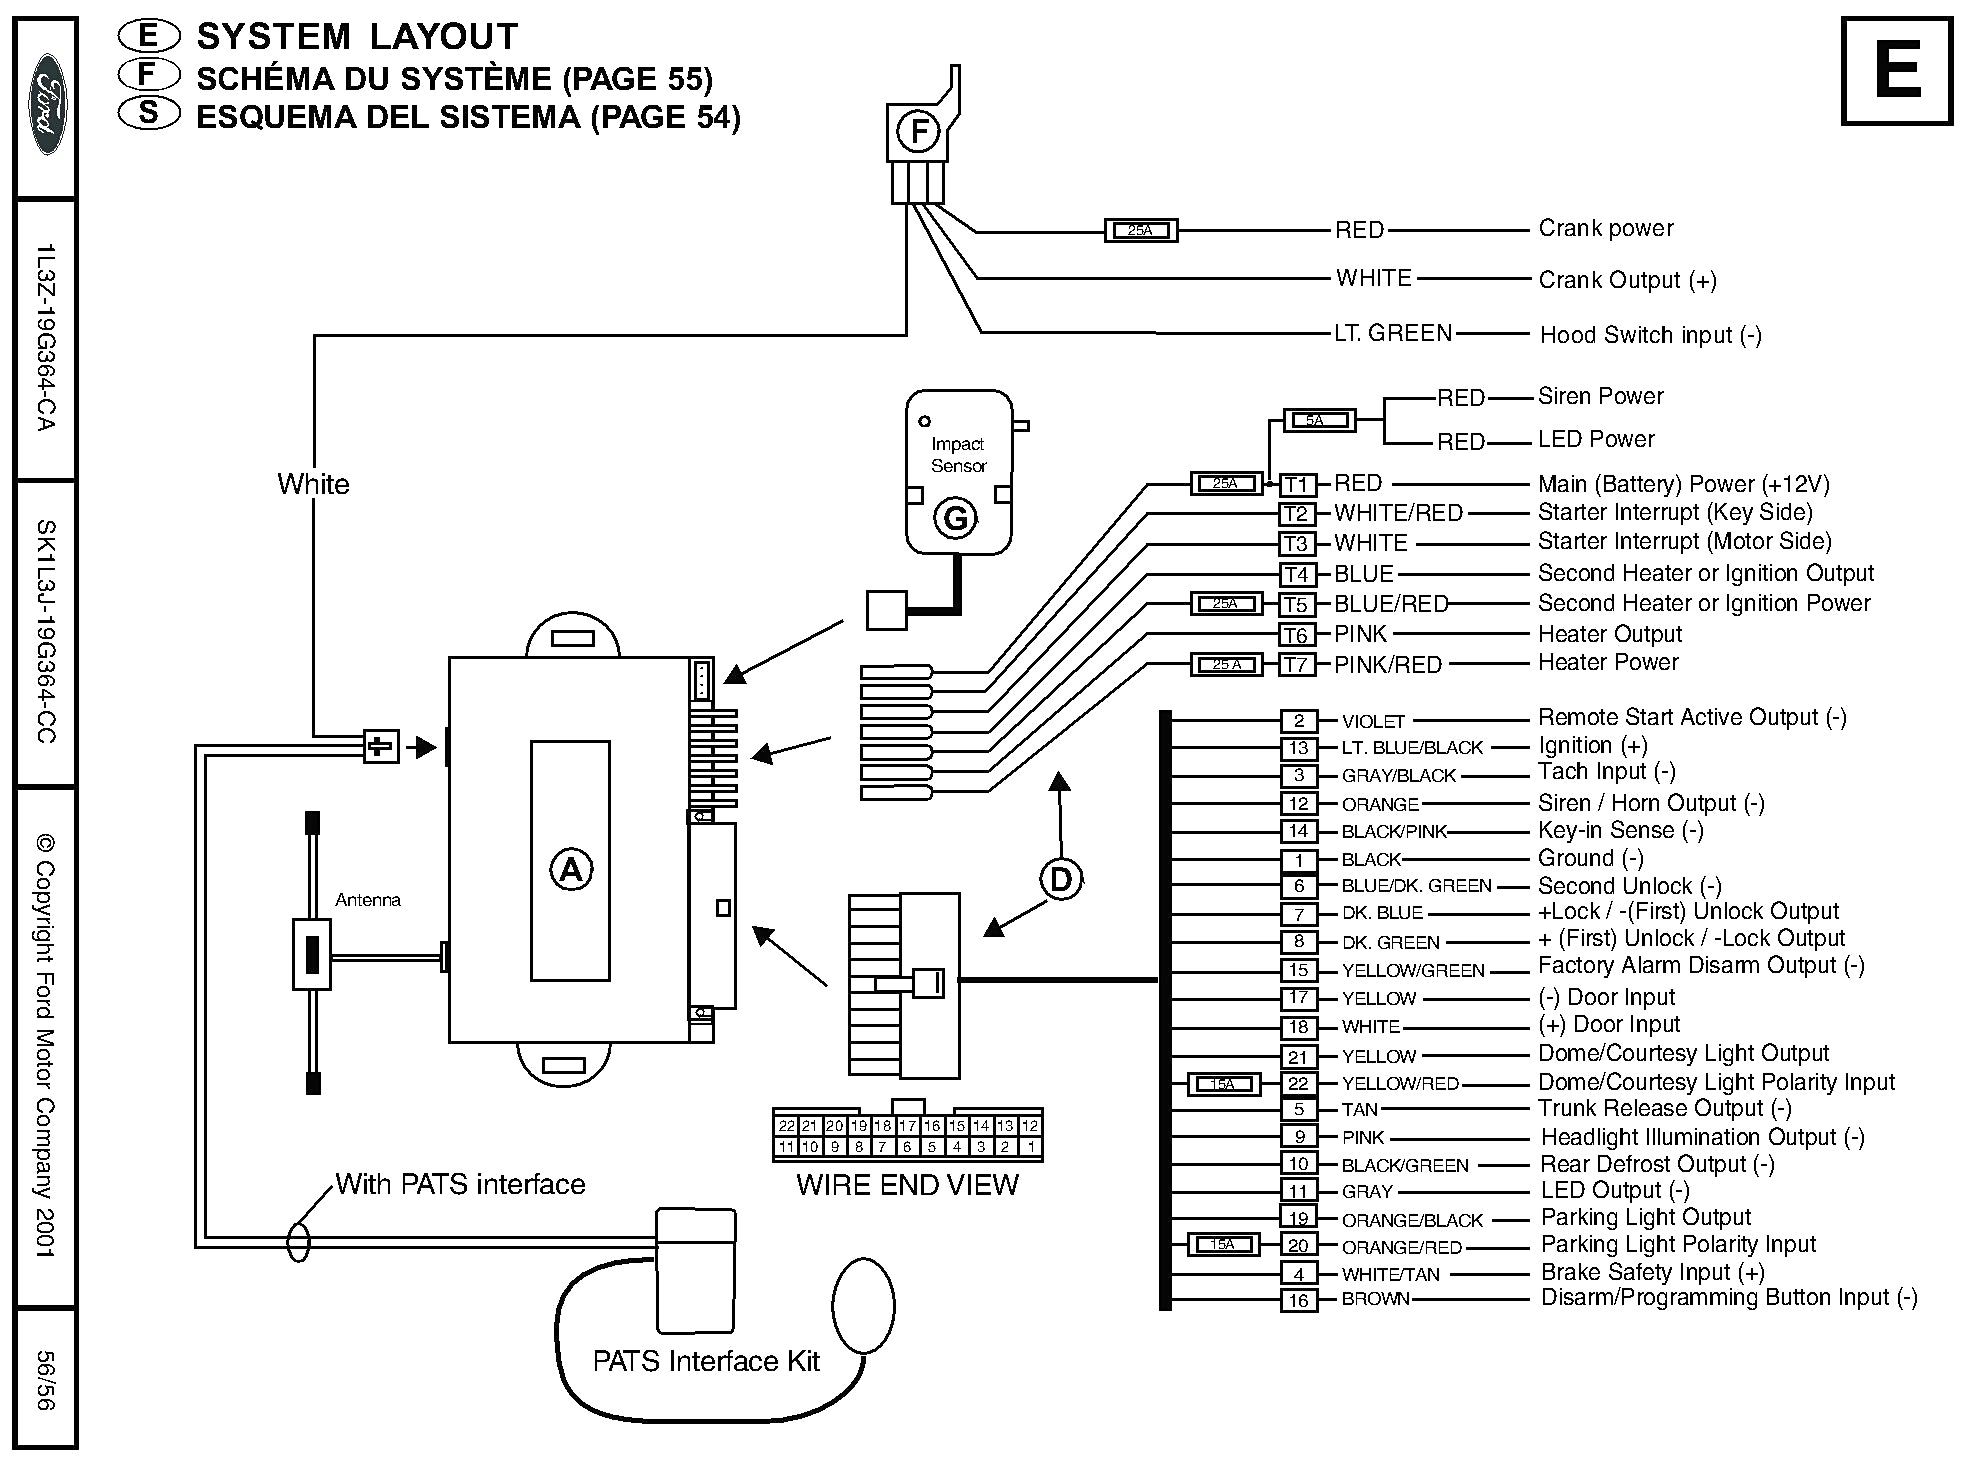 Honda Generator Remote Start Wiring Diagram Free 120v Led Picture Schematic Avital Car Alarms Diagrams Circuit